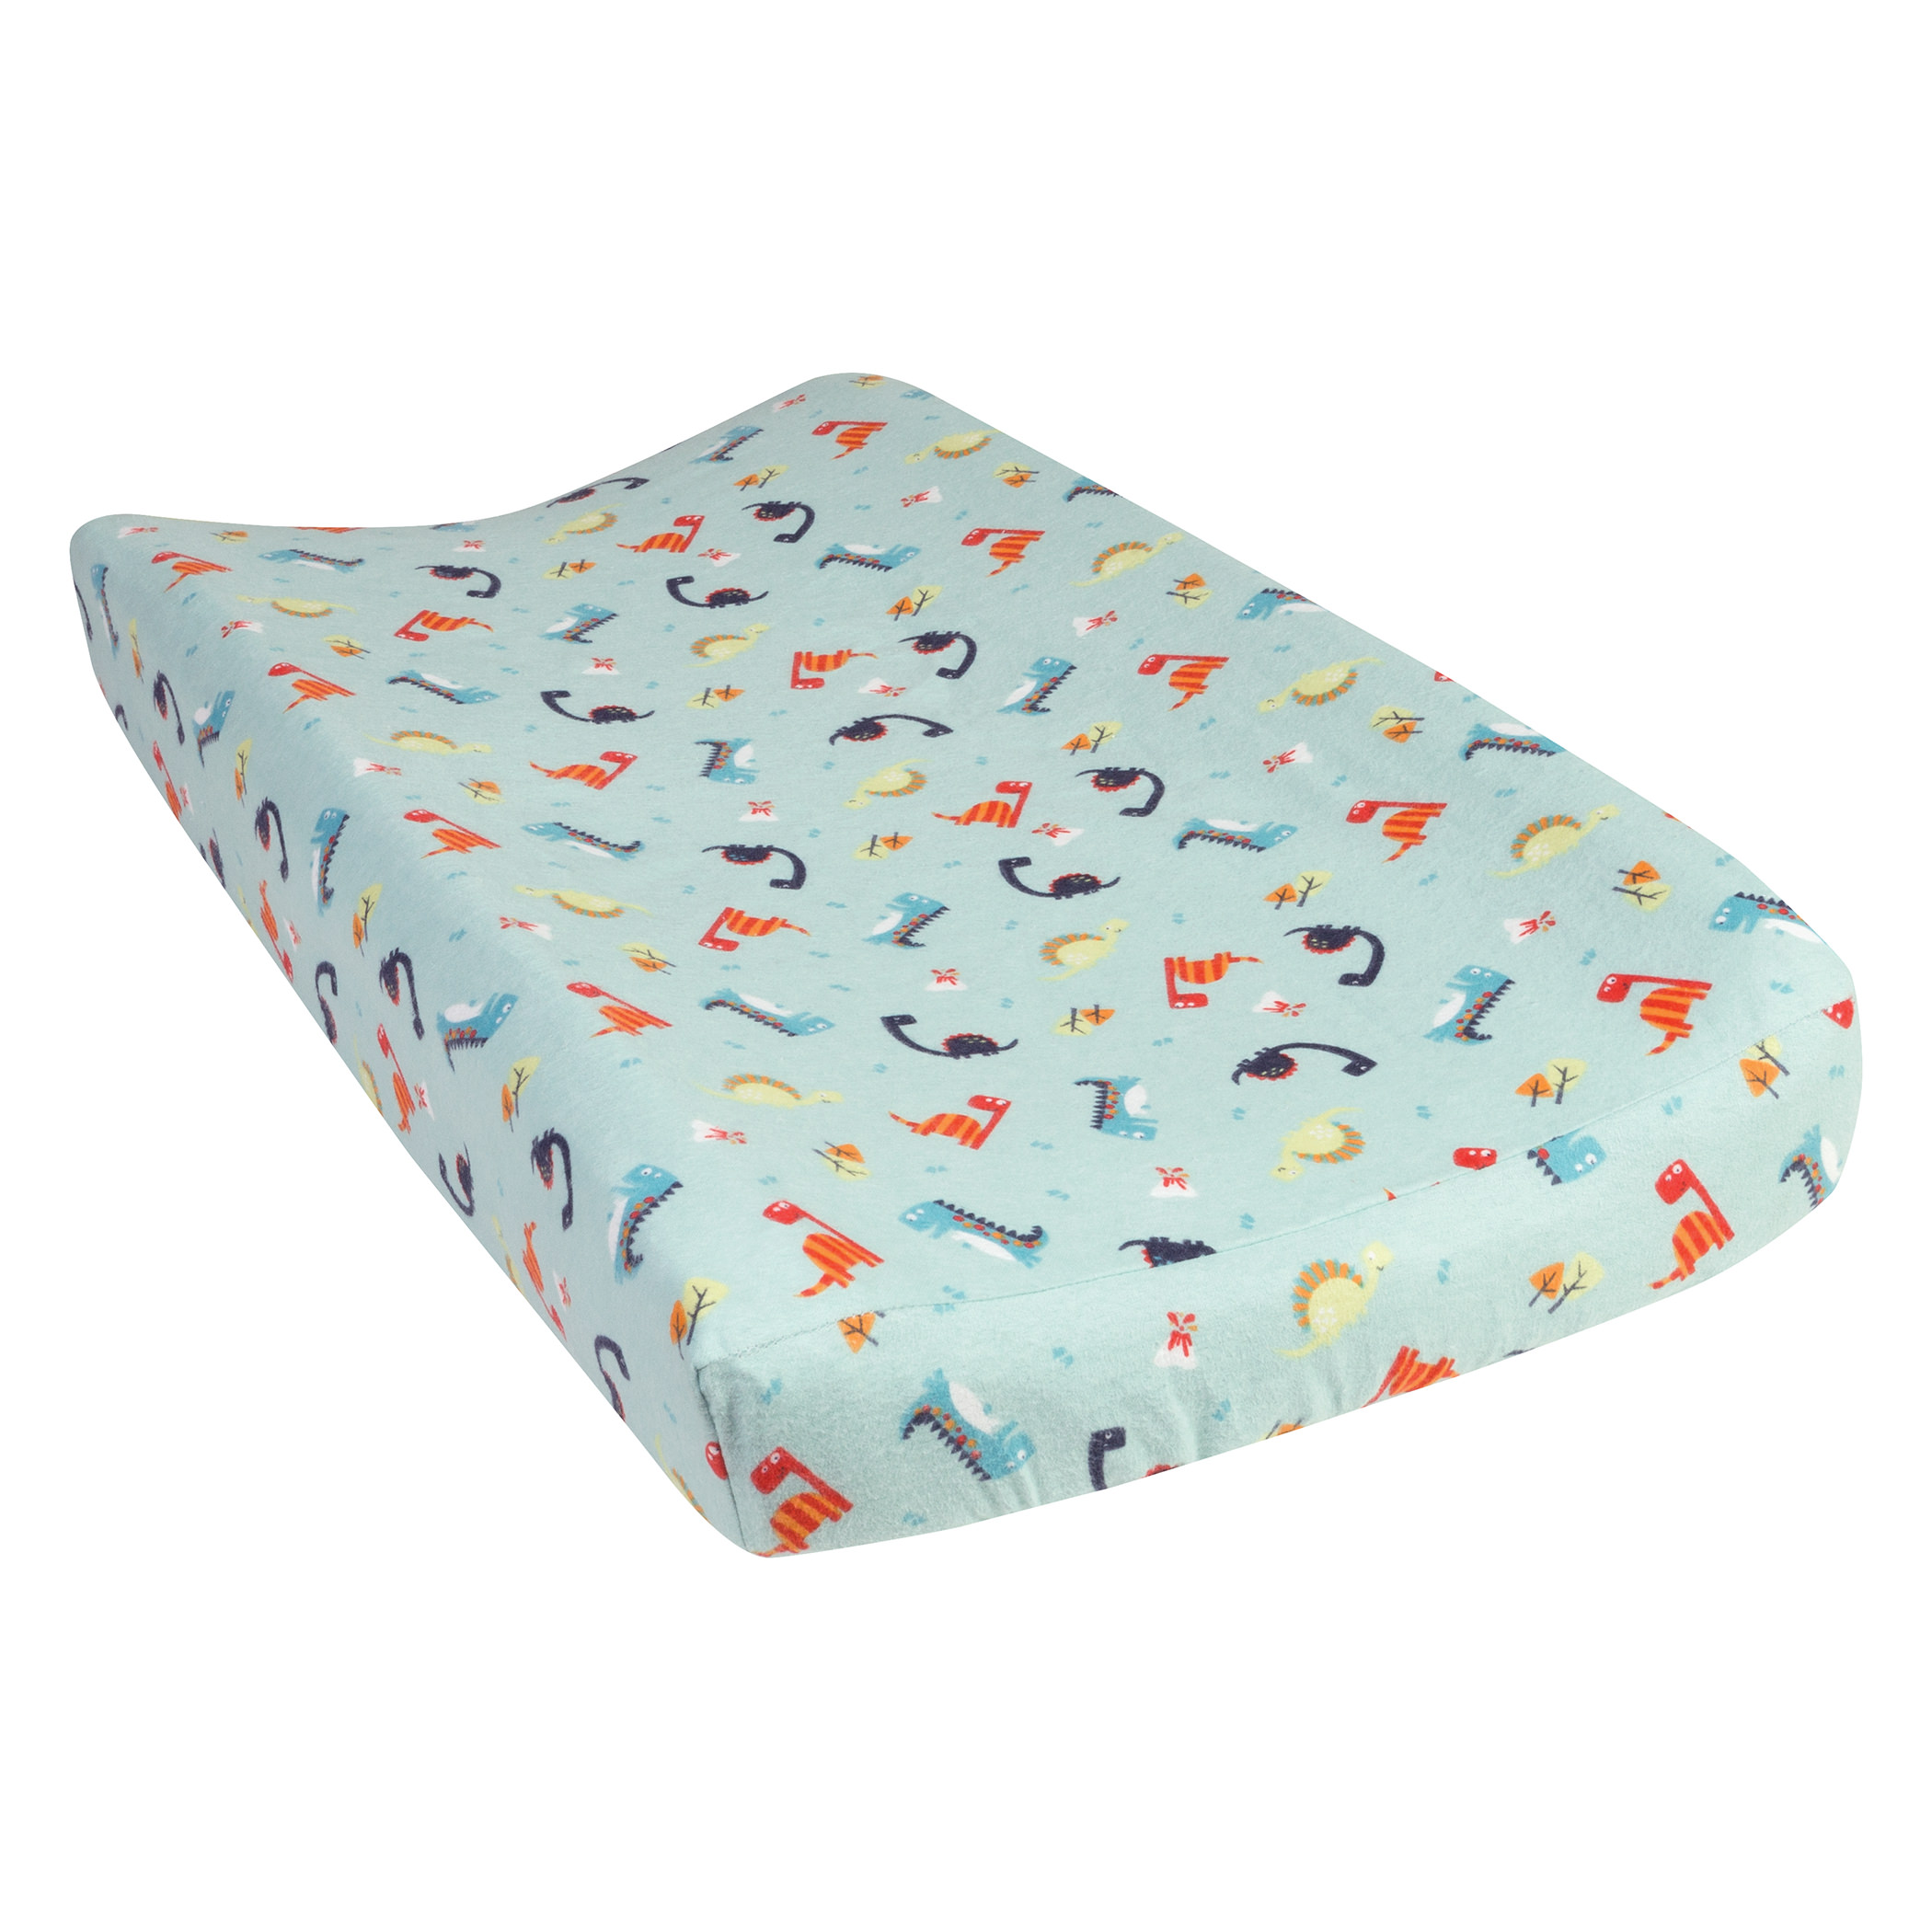 Dinosaurs Deluxe Flannel Changing Pad Cover Walmart Com